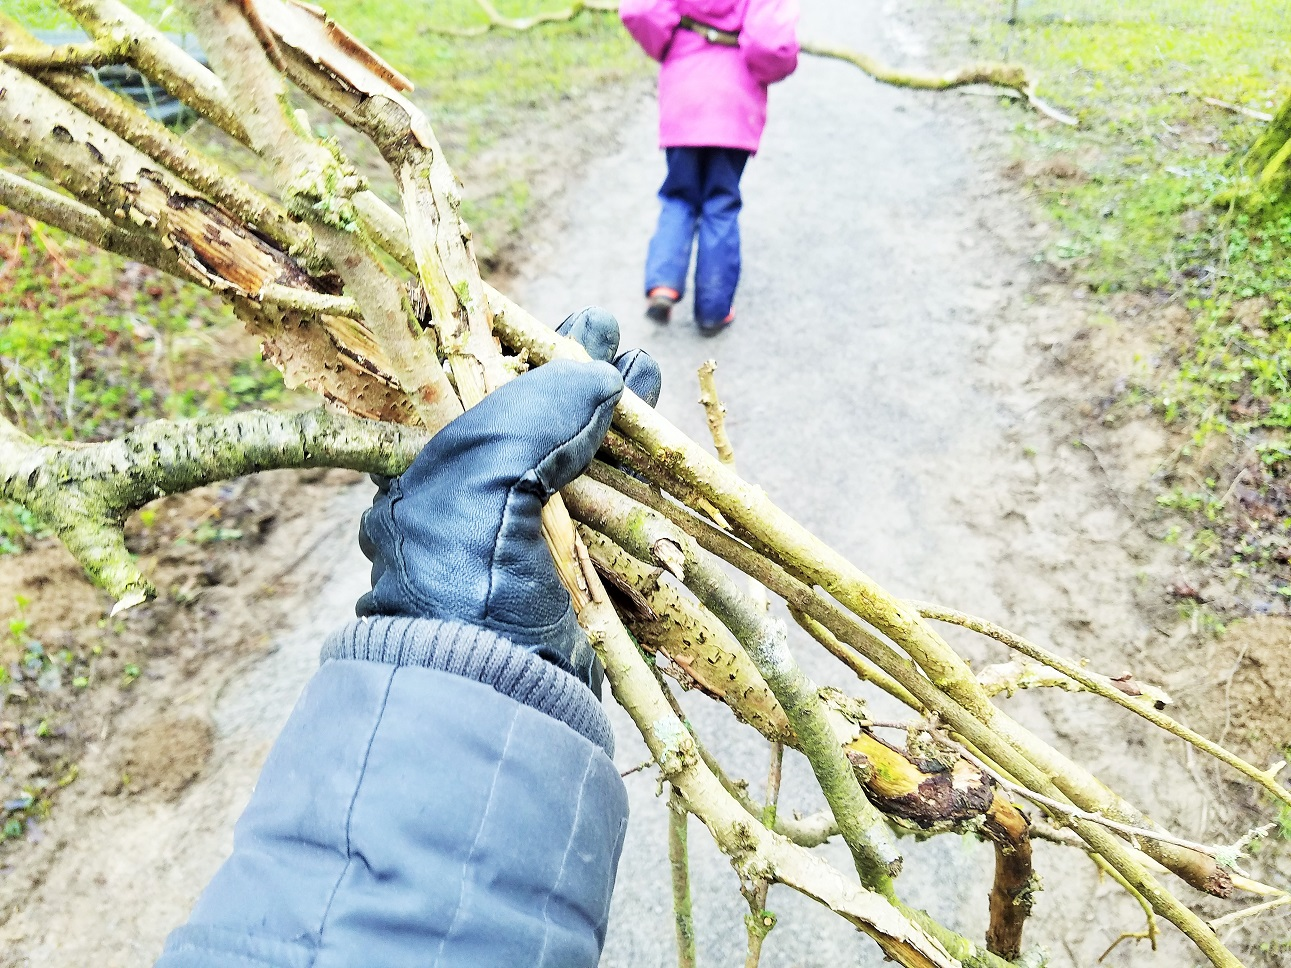 Chumping is yorkshire dialect for wood collecting - Forest school in Yorkshire Dales